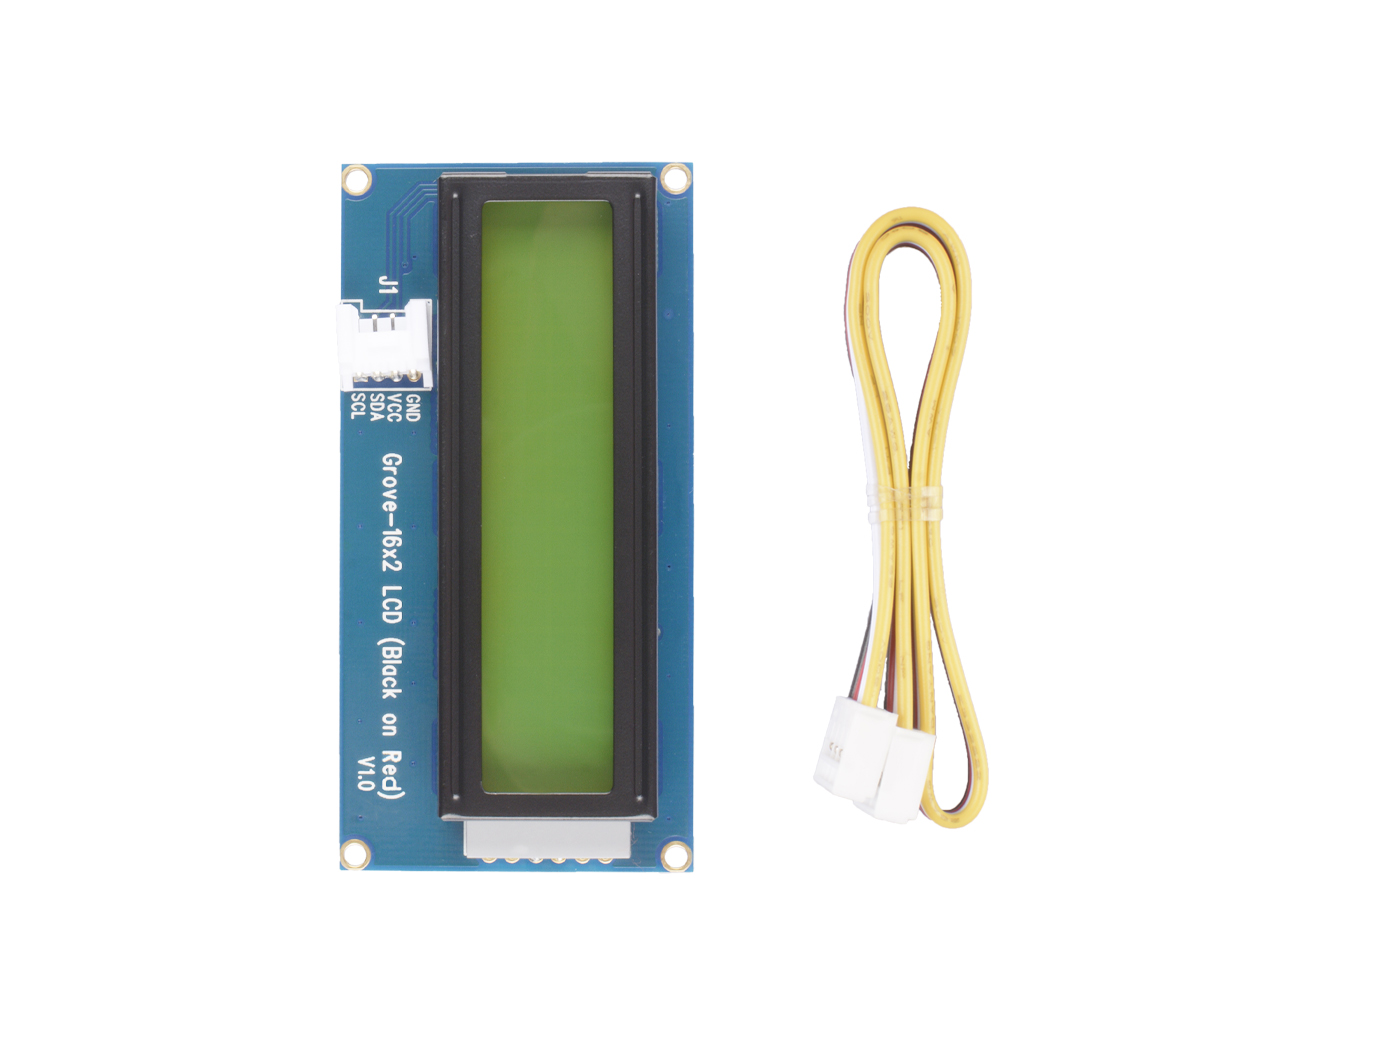 Grove - 16 x 2 LCD (Black on Red)